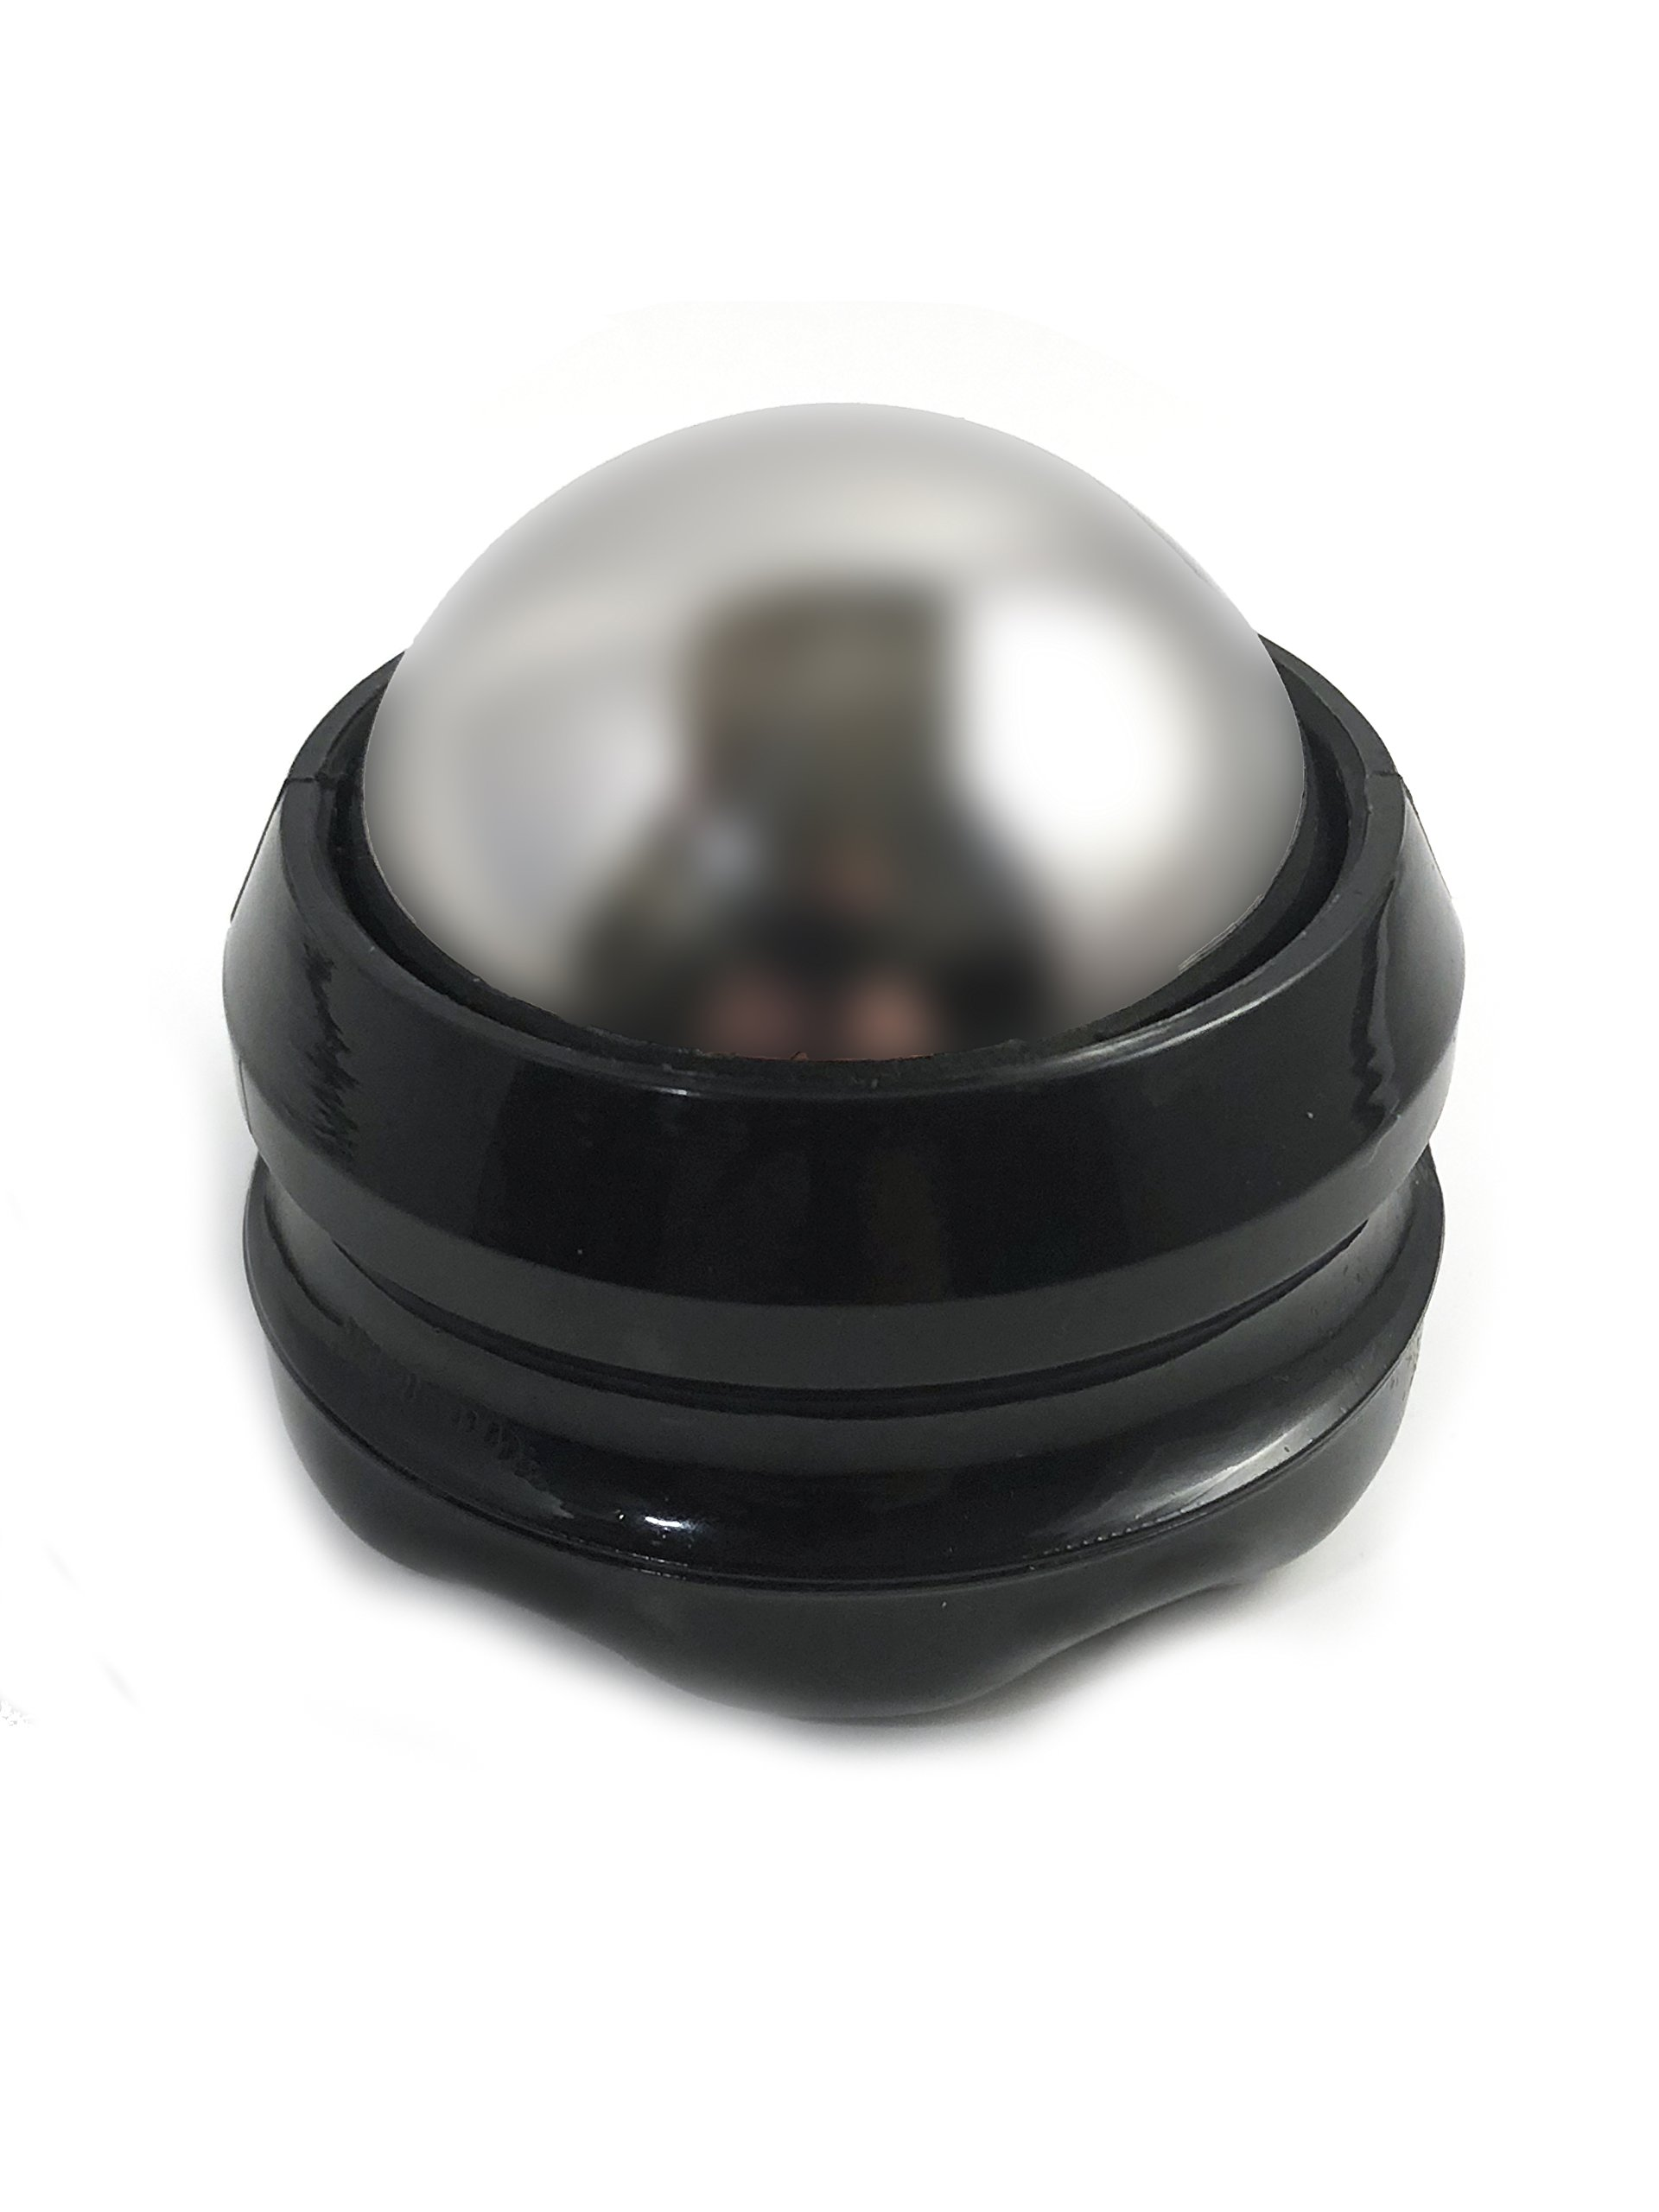 Cold Massage Roller Ball by Professional Rehab - Our Cold Therapy Massage Relieves Muscles Soreness and Inflammation - Muscle Massage - Shin Splints - Stress Relief - Sports Rehab - Stainless Steel